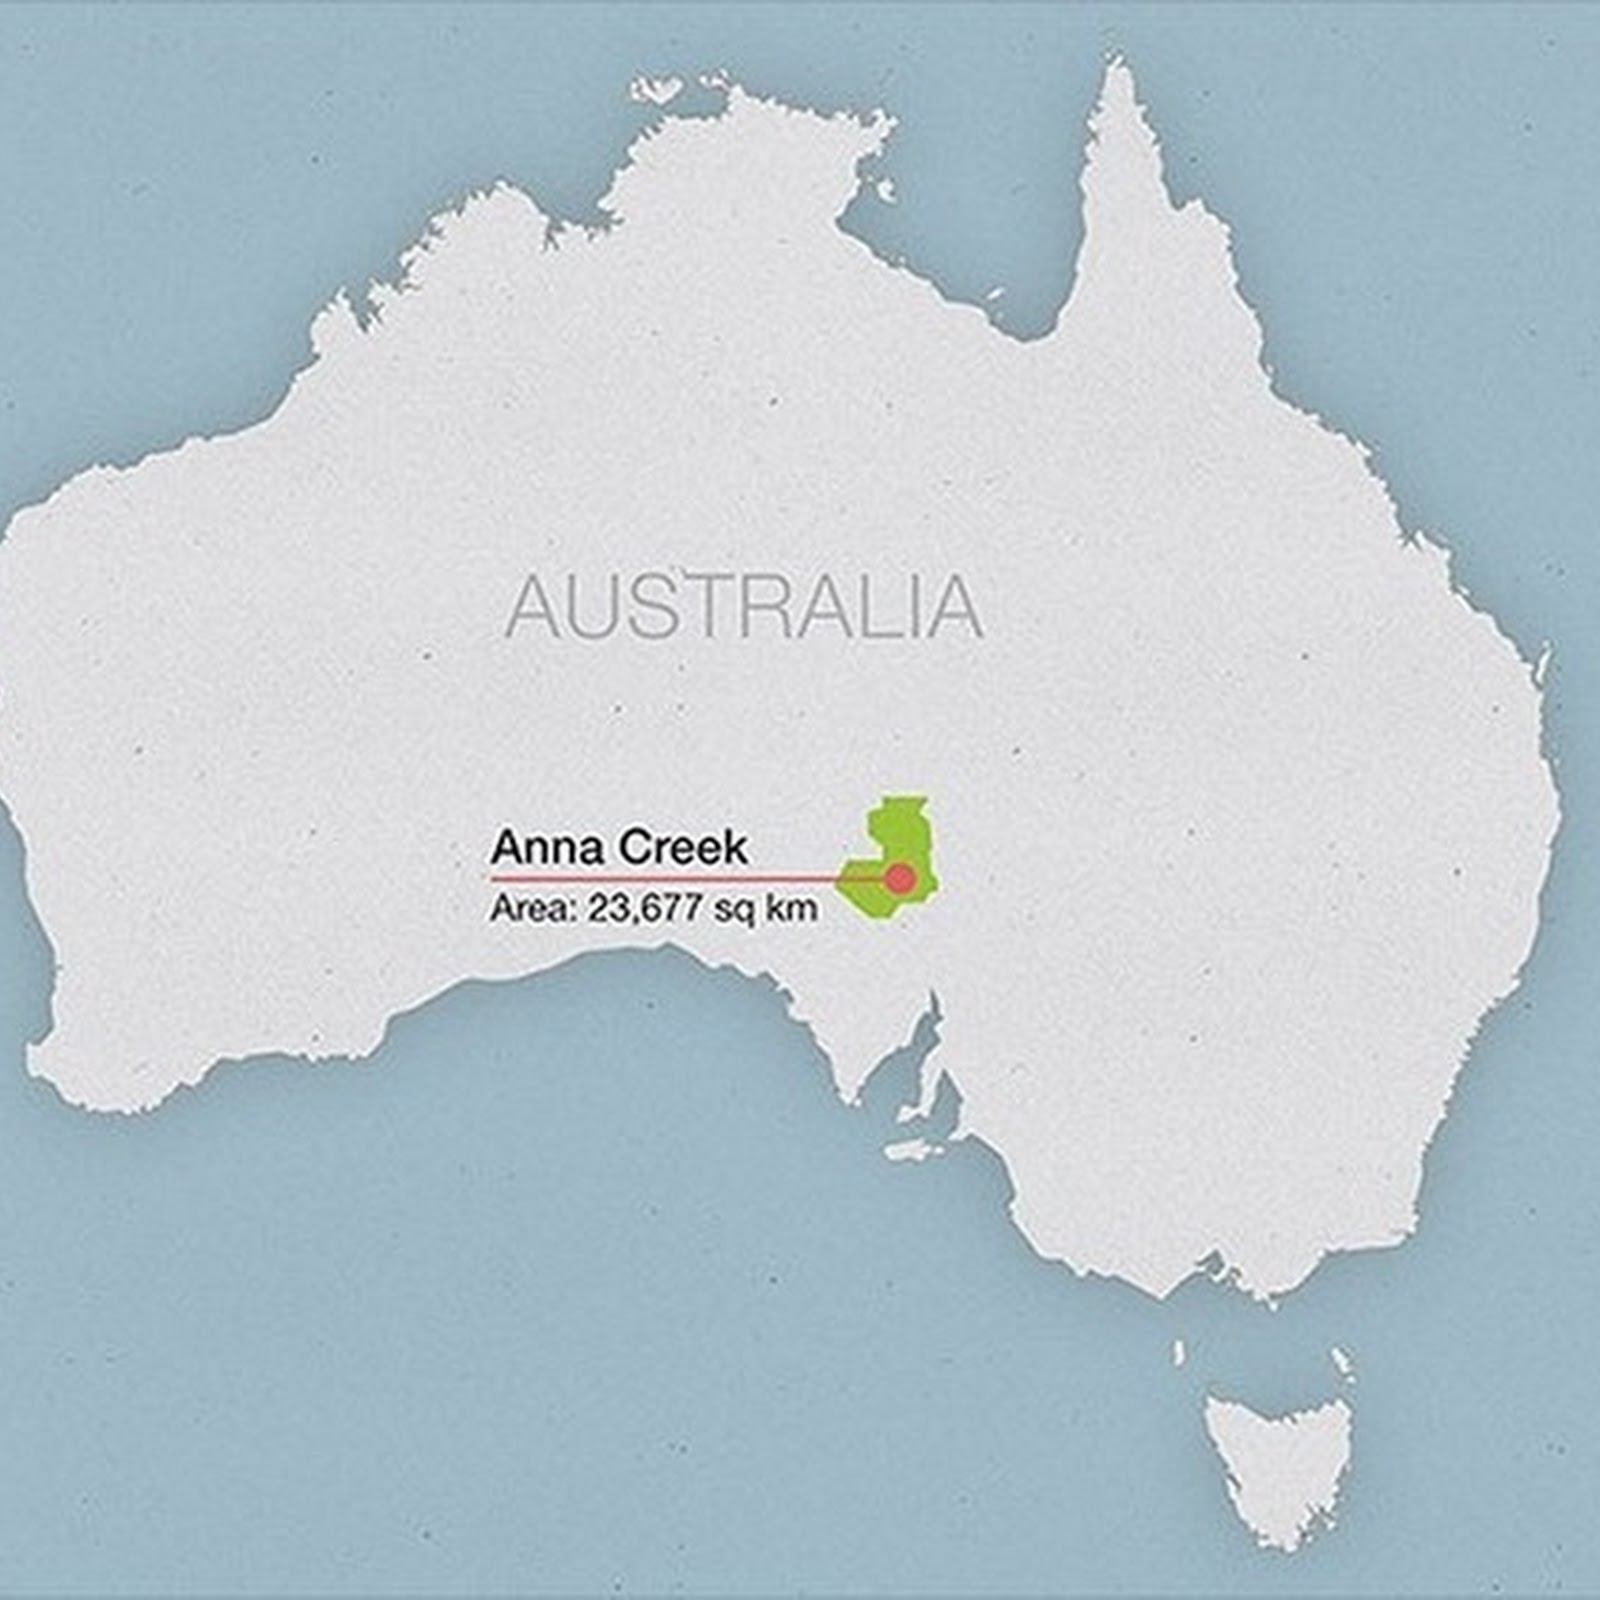 Anna Creek: A Cattle Station Bigger Than Israel